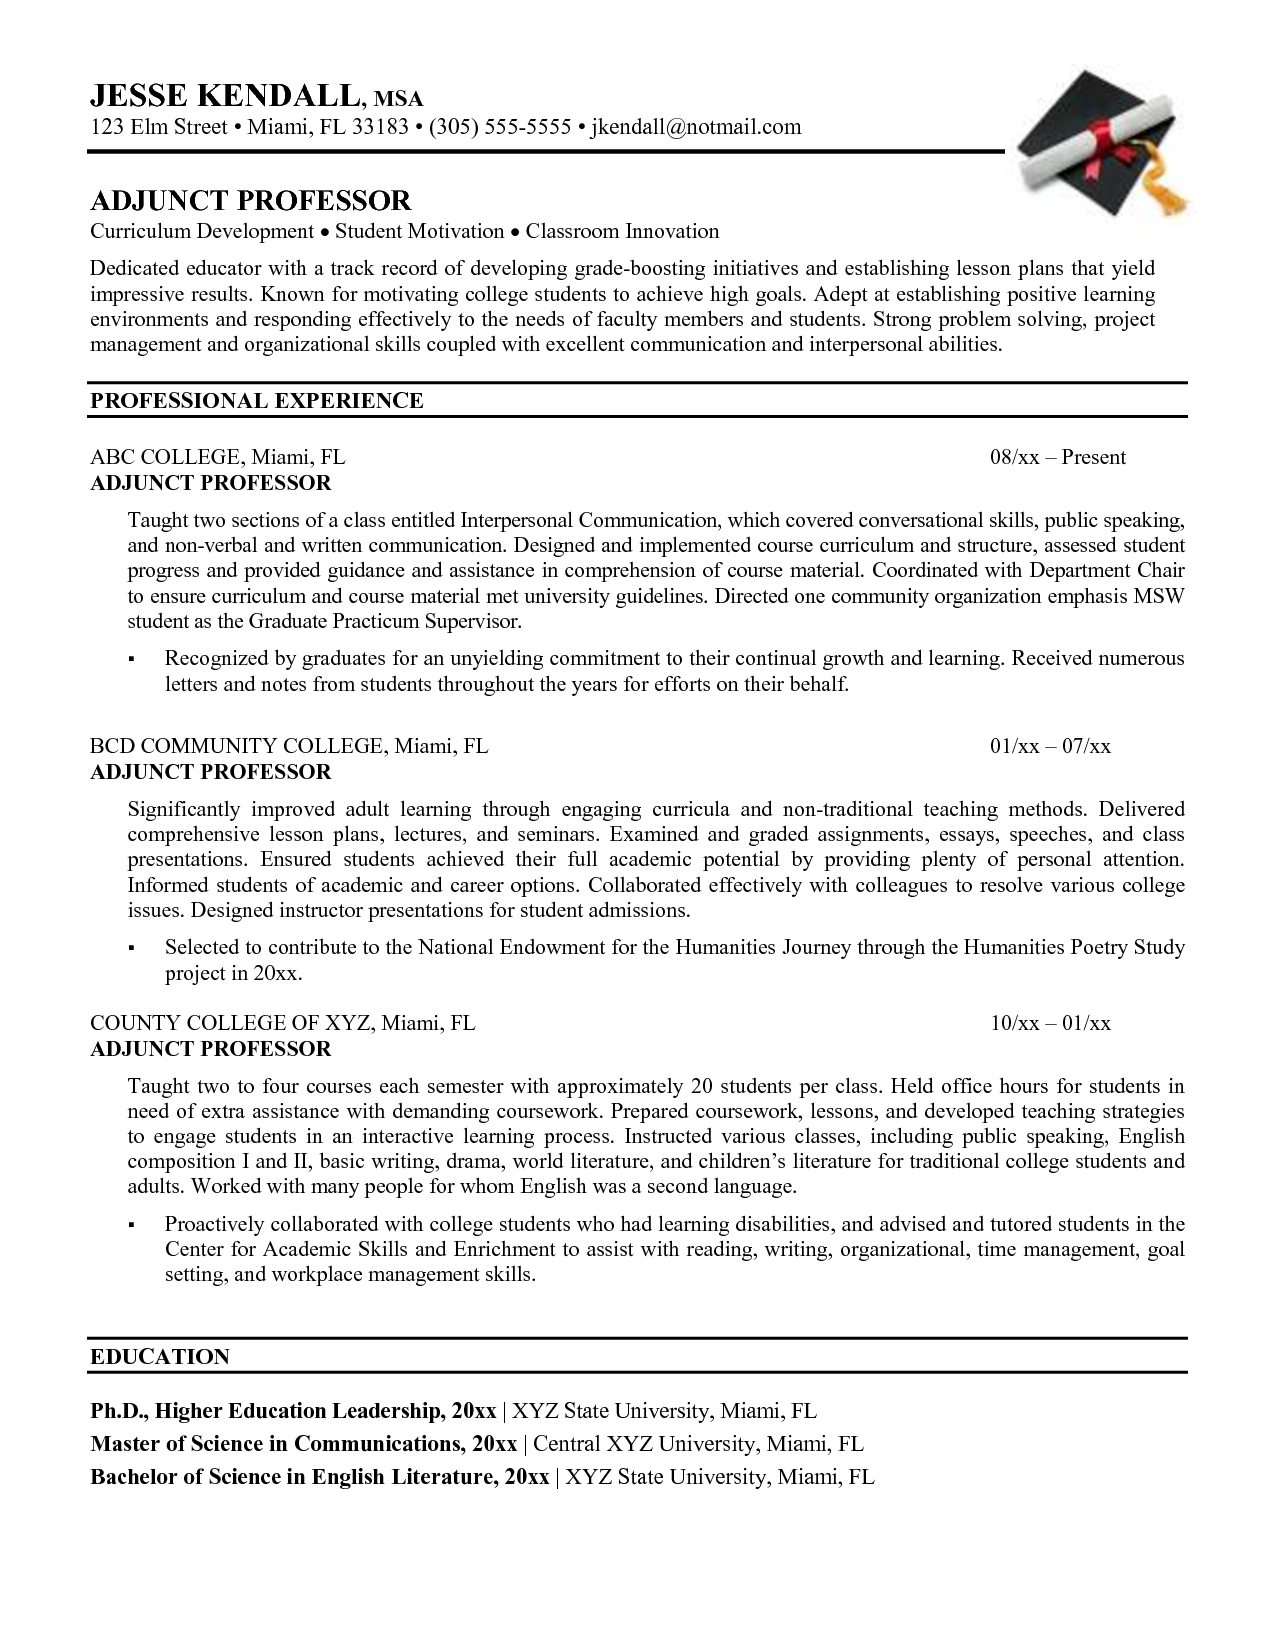 Resume Template College Sample Resume For Faculty Position Engineering Adjunct Professor